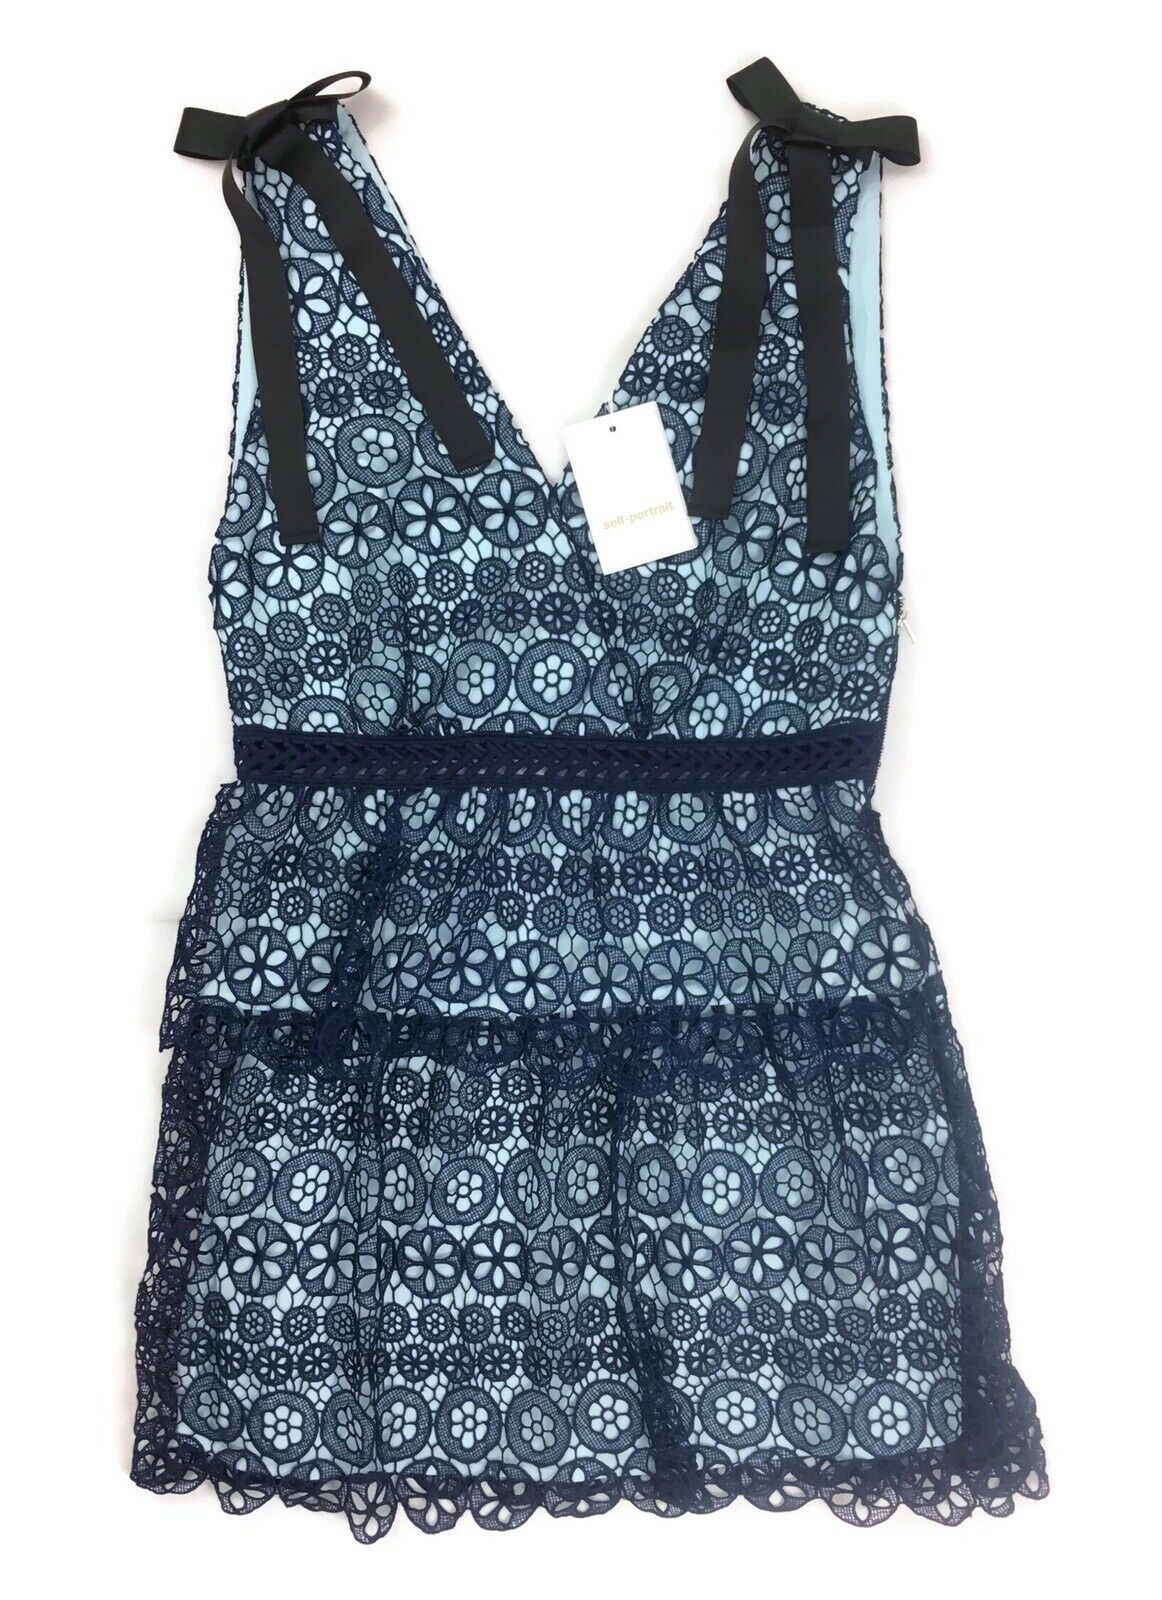 Self-Portrait Tiered Circle Floral Lace Dress - bluee - UK14 US10 - RRP  New